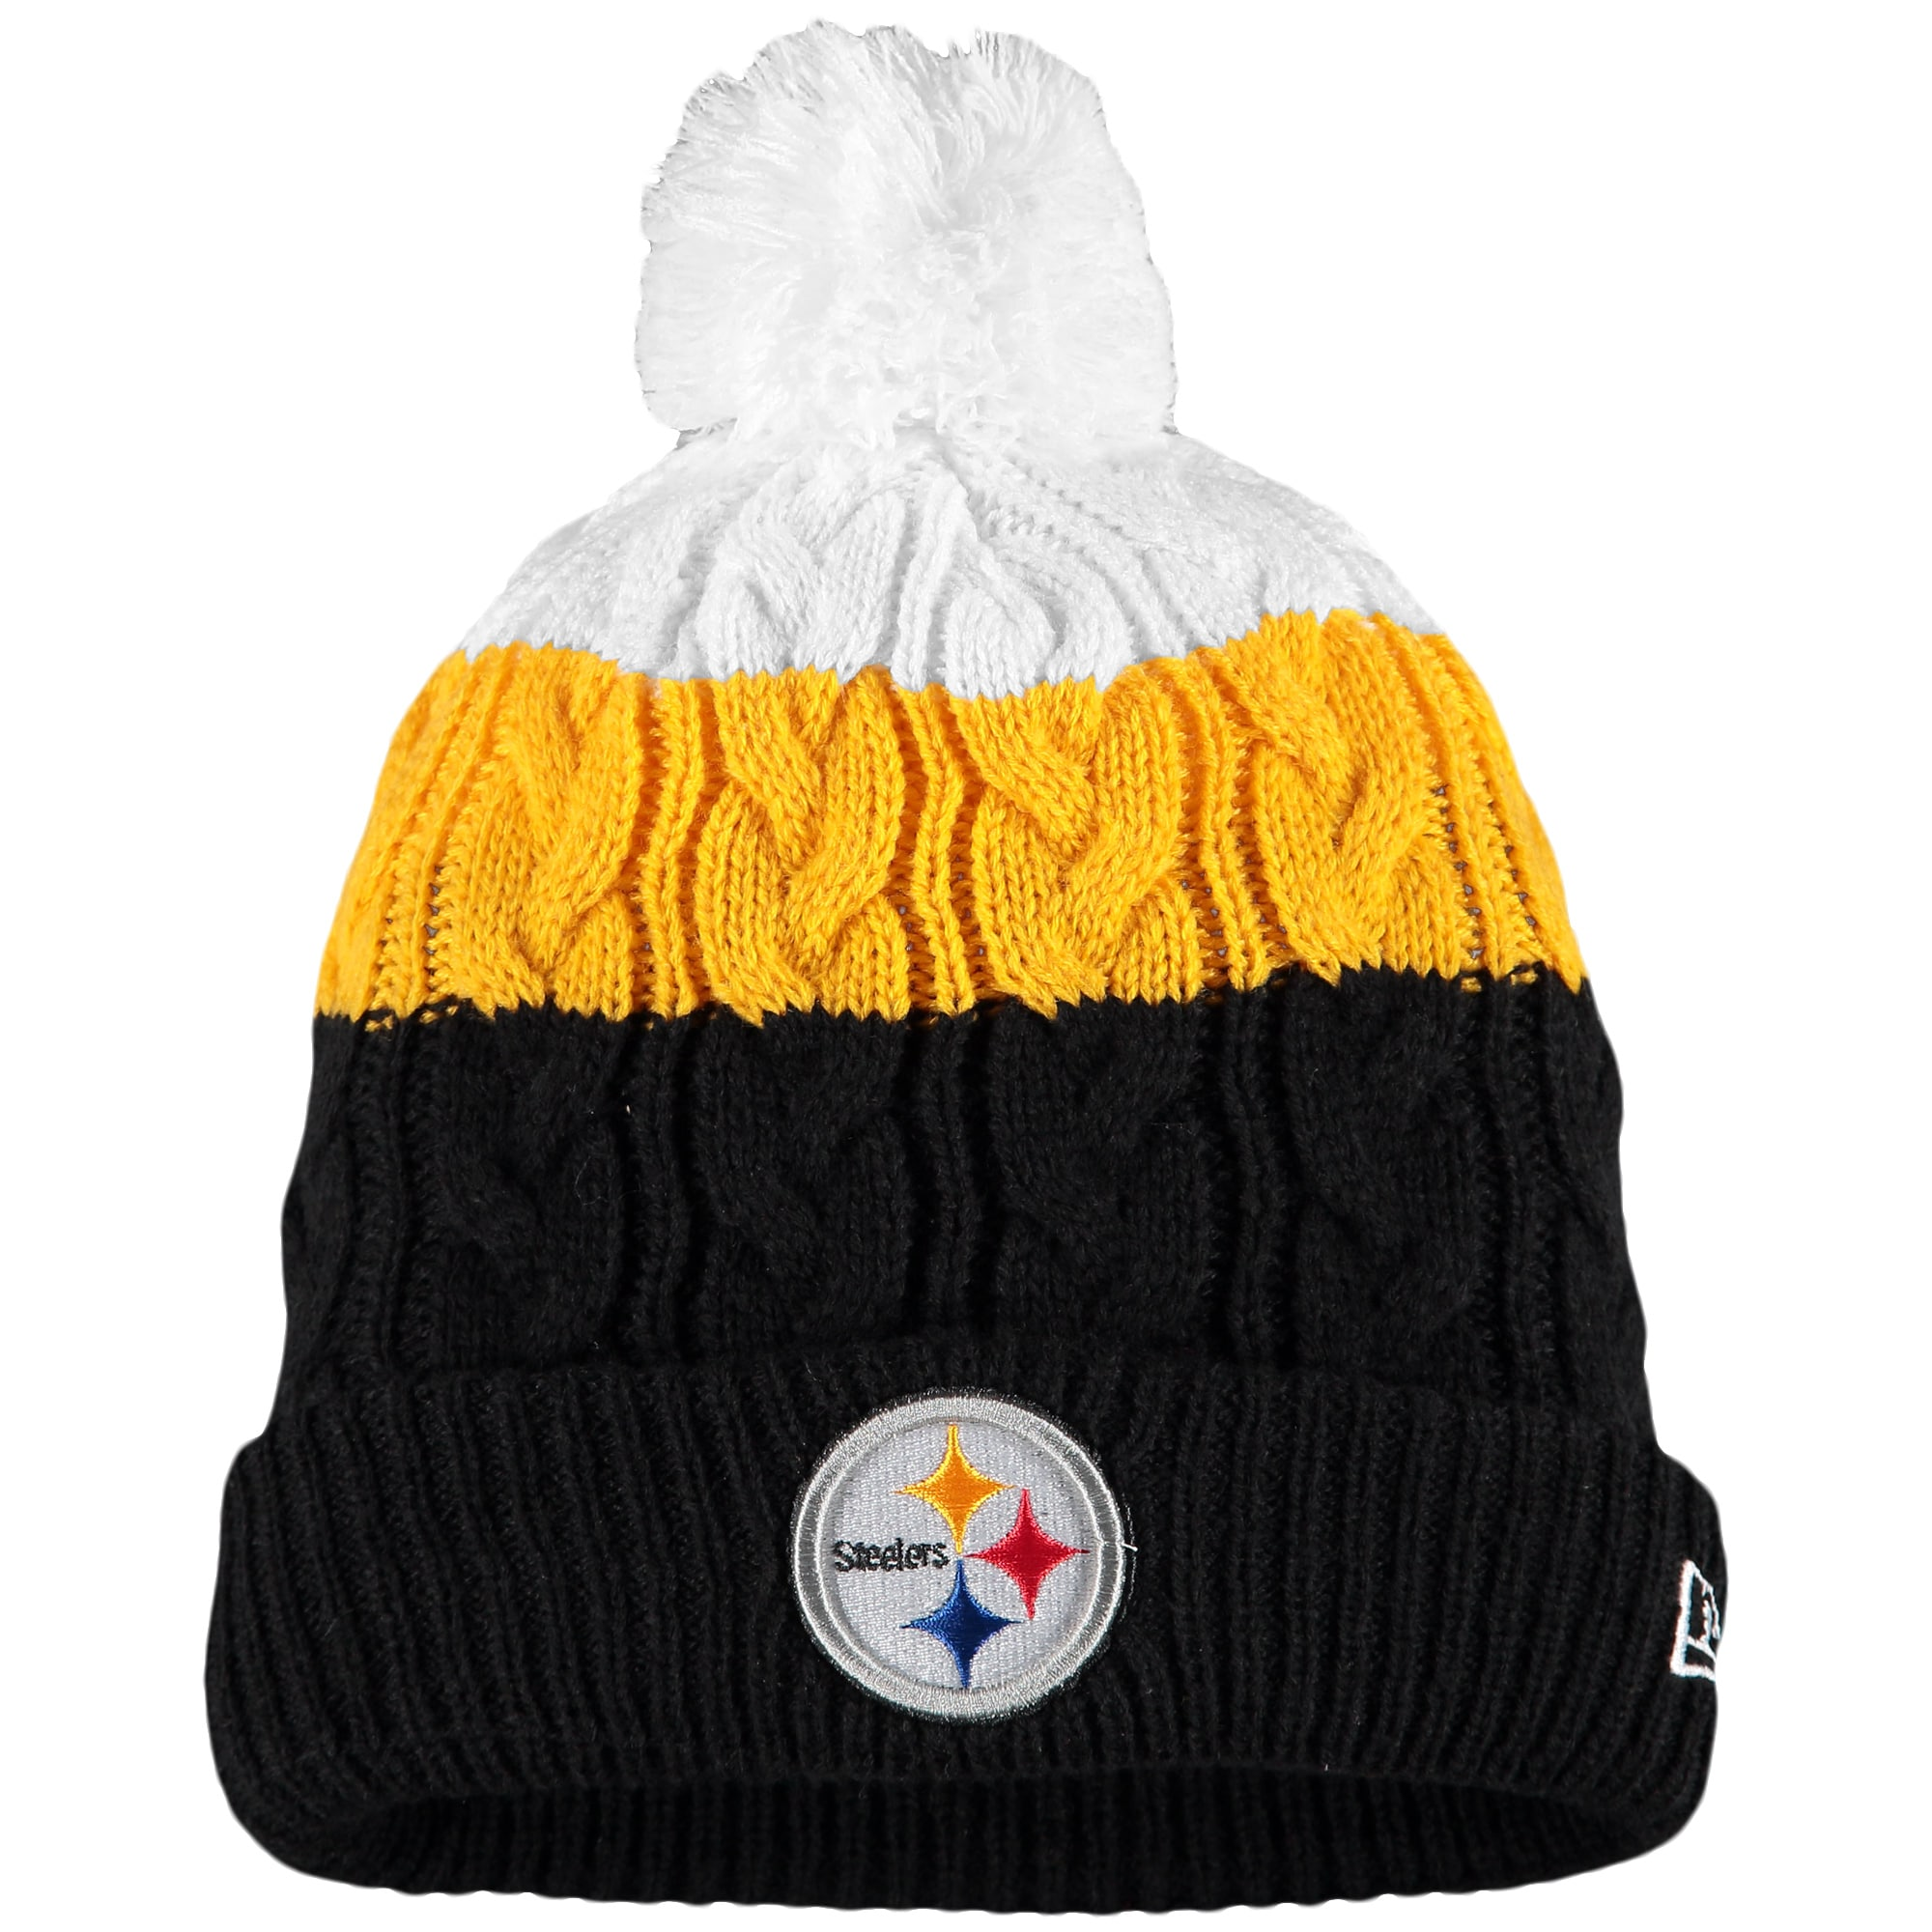 Pittsburgh Steelers New Era Women's Layered Up 2 Cuffed Knit Hat with Pom - White/Black